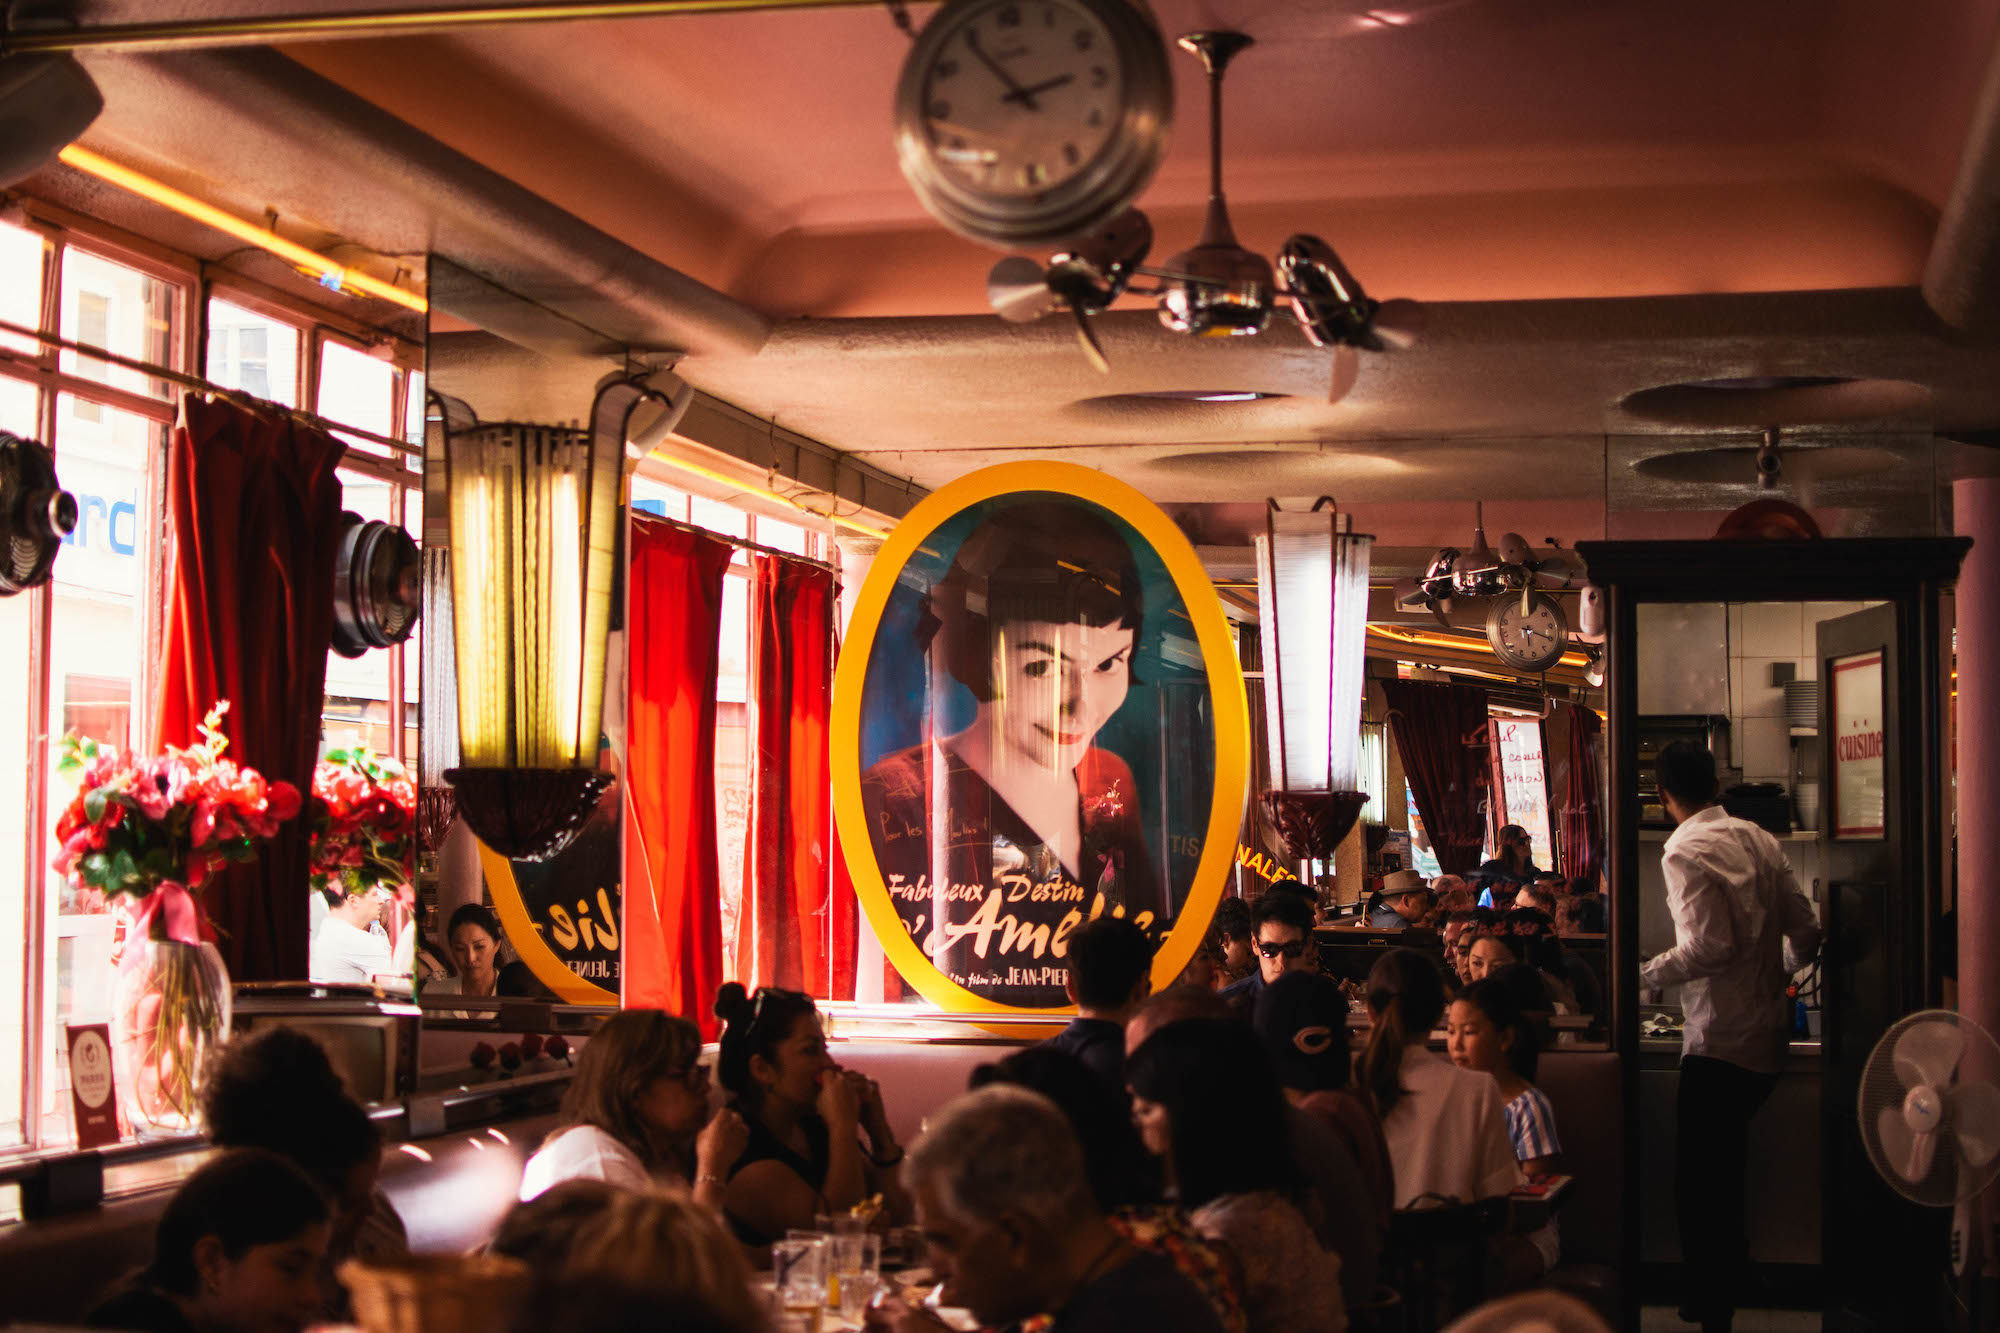 "Inside the Café des 2 Moulins, otherwise known as the café in the movie ""Amélie"", with an image of Amélie printed on a glass pane and people sat in booths."